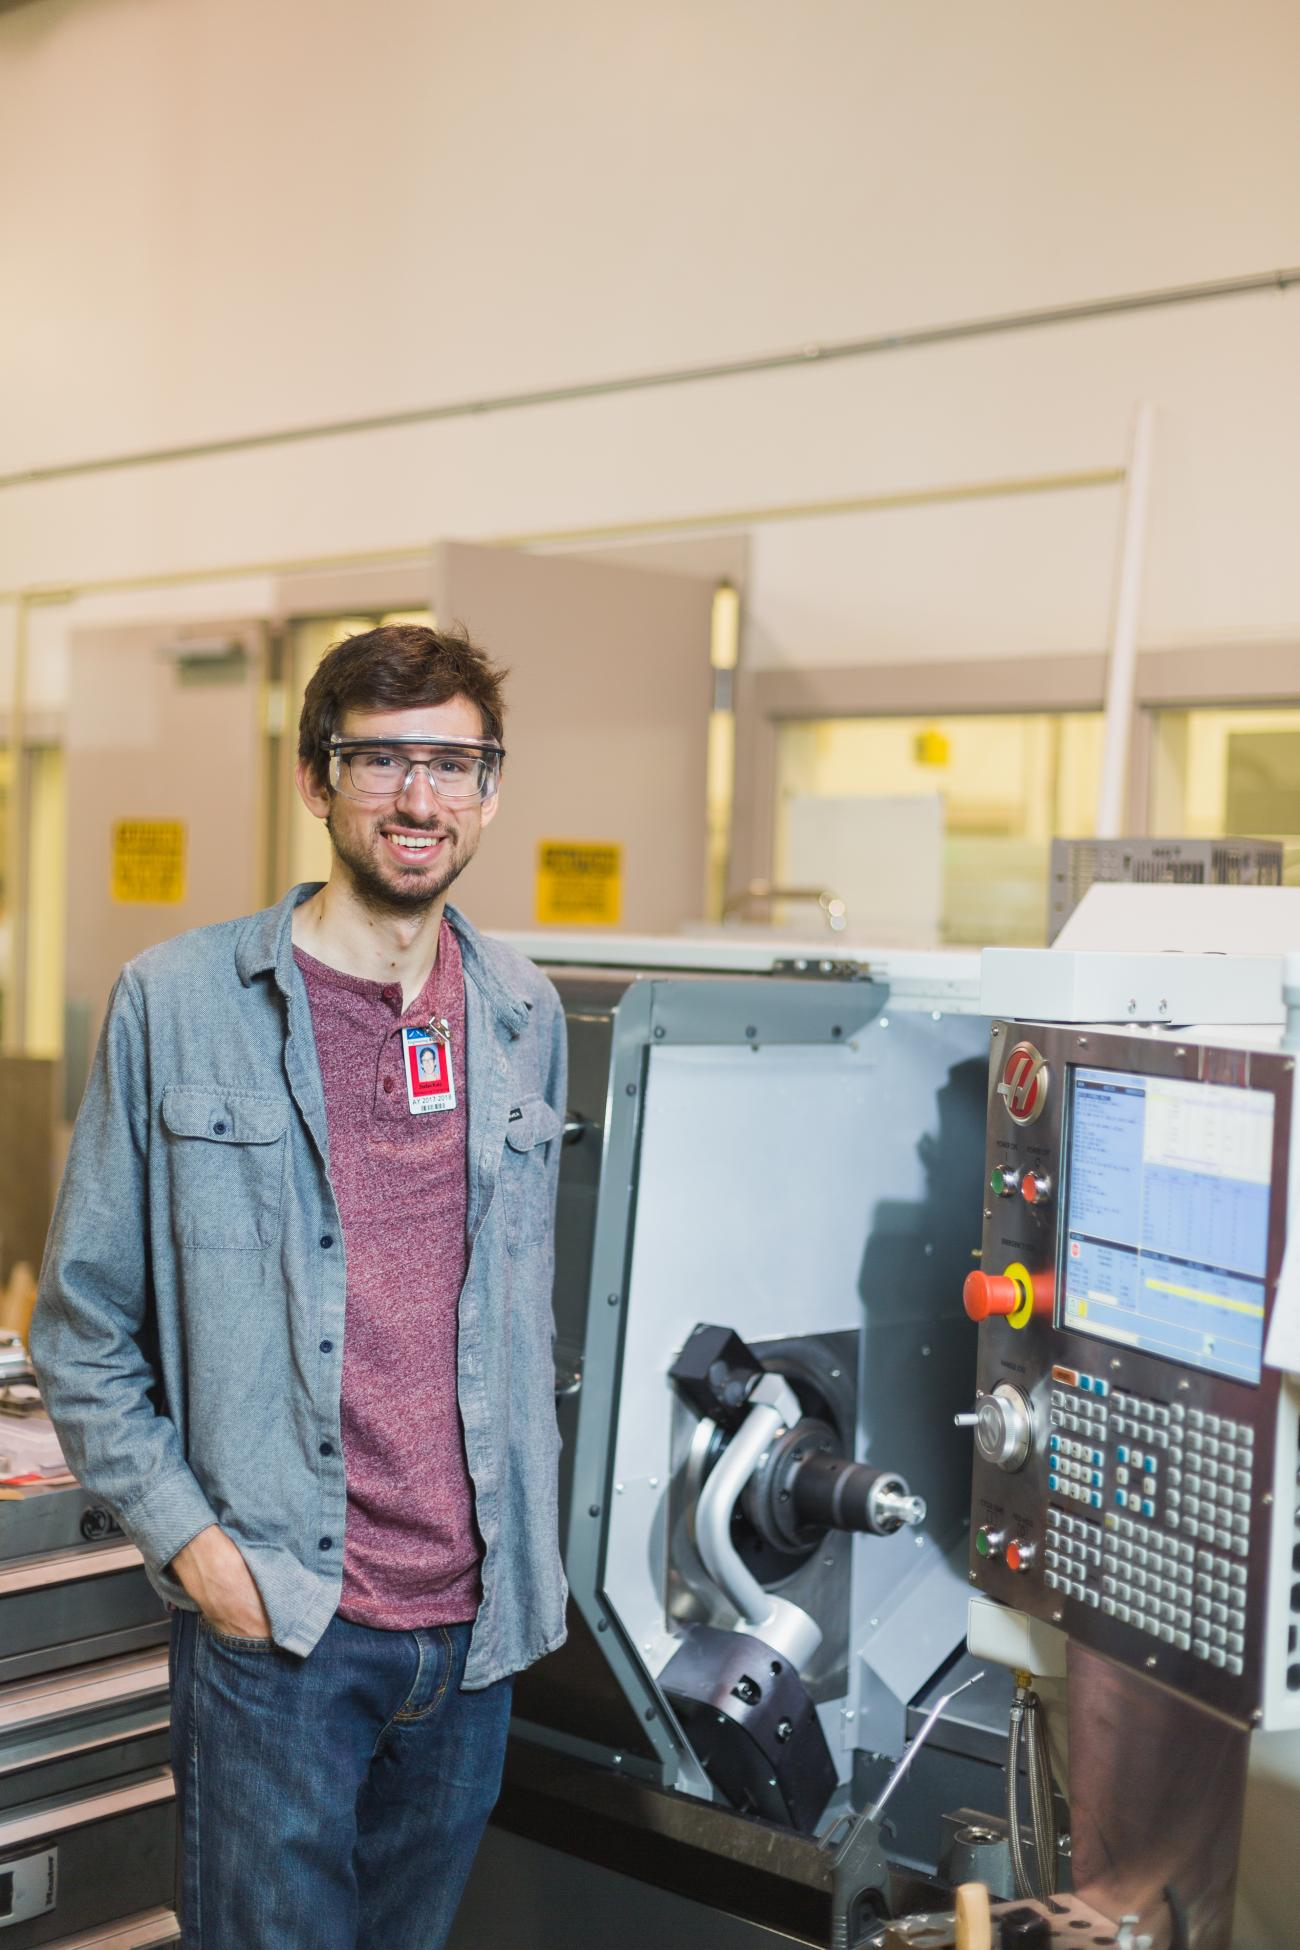 A Manufacturing Student standing next to a machine